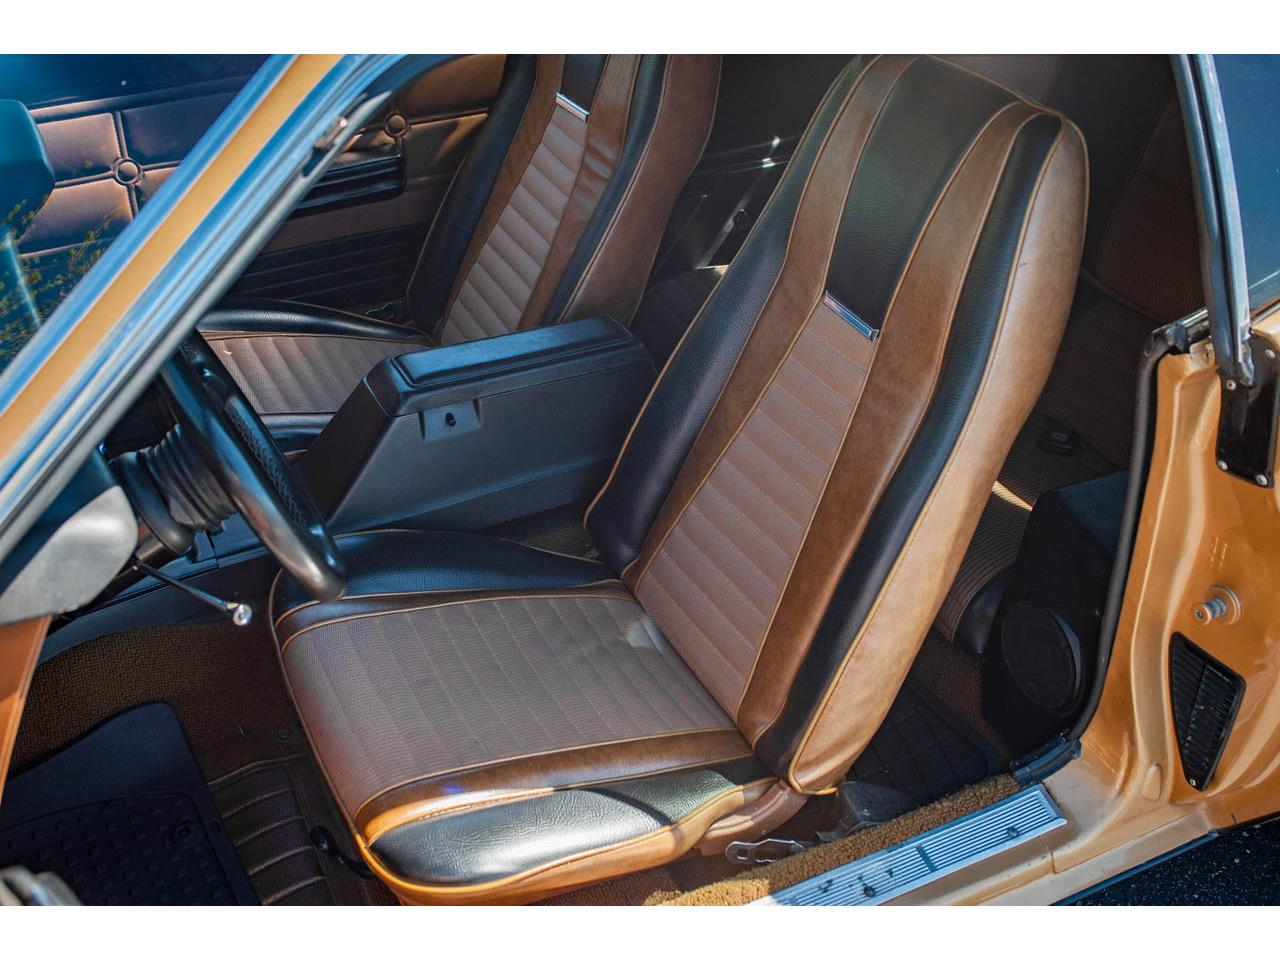 Large Picture of 1973 Ford Mustang located in Illinois Offered by Gateway Classic Cars - St. Louis - QB8T